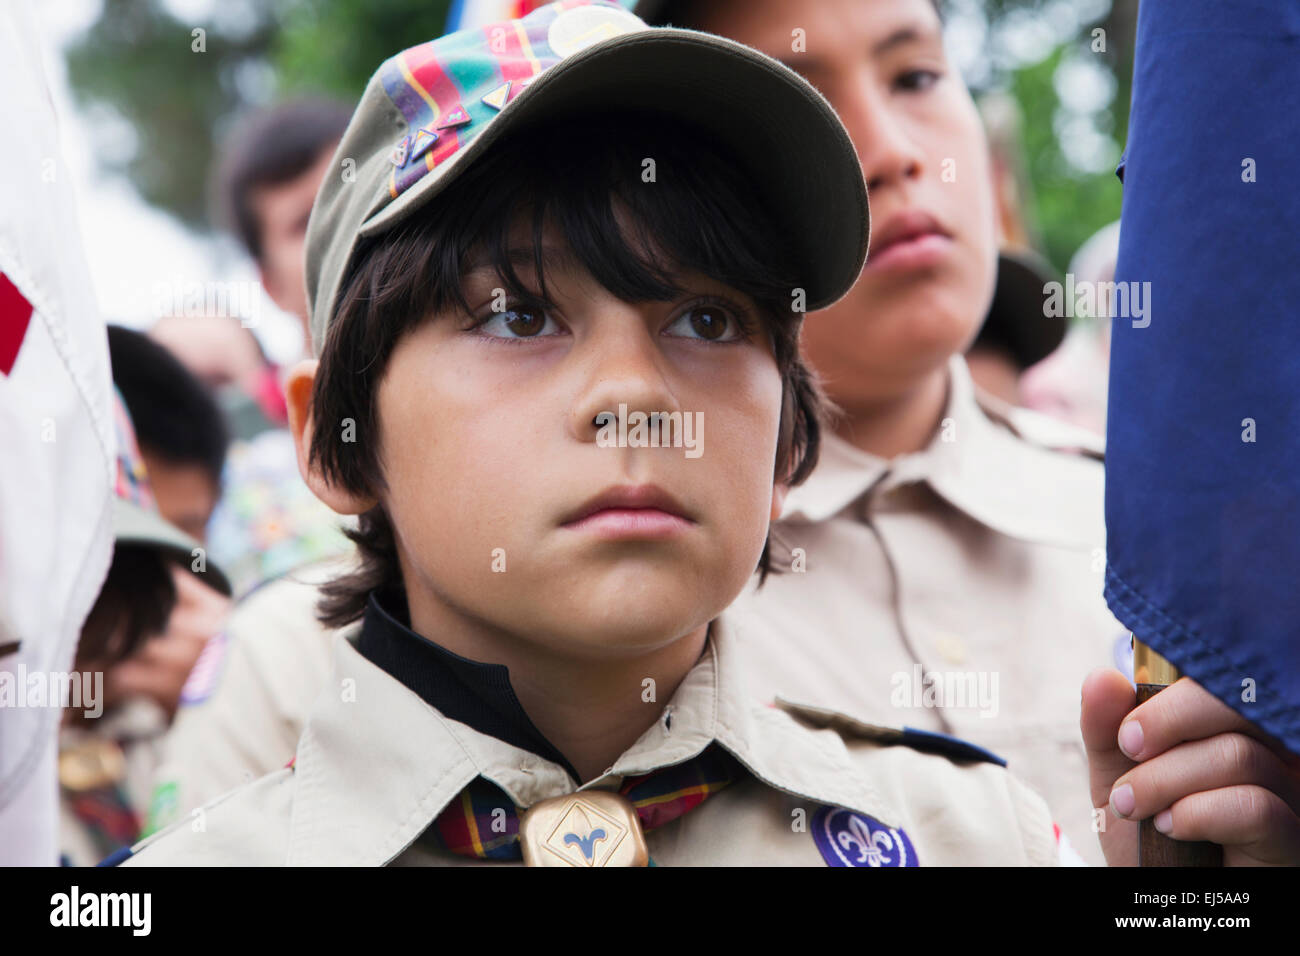 Boyscout face at 2014 Memorial Day Event, Los Angeles National Cemetery, California, USA - Stock Image